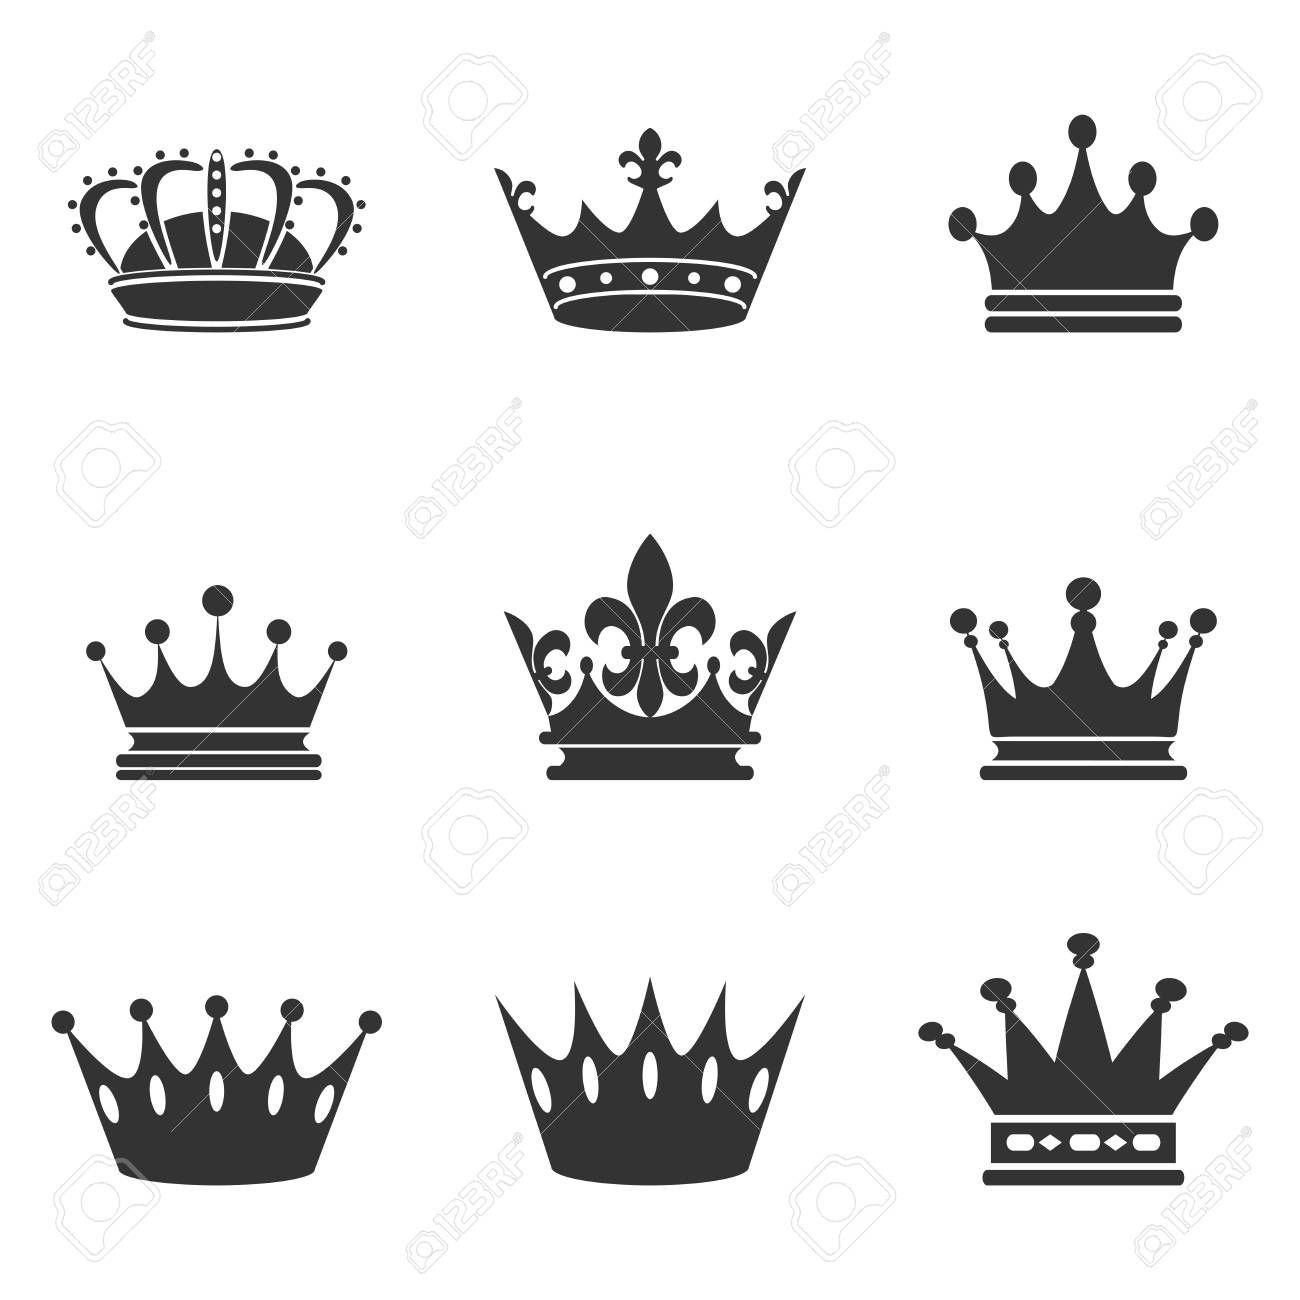 collection of crown silhouette